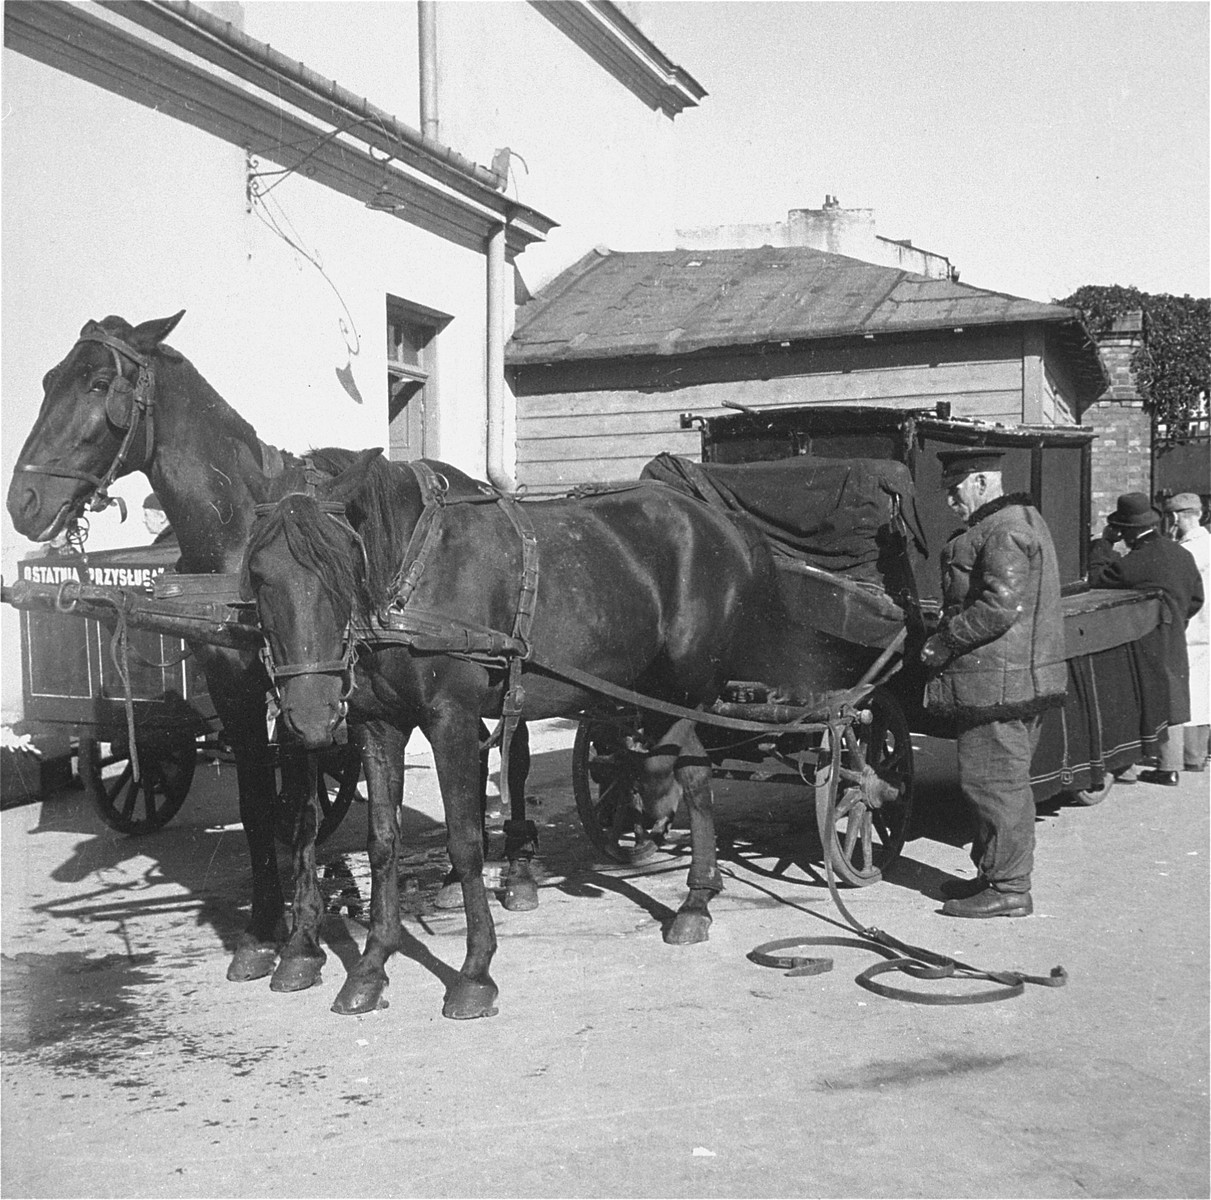 An undertaker from the Pinkiert funeral home adjusts the harness on his horse before leading a funeral procession.